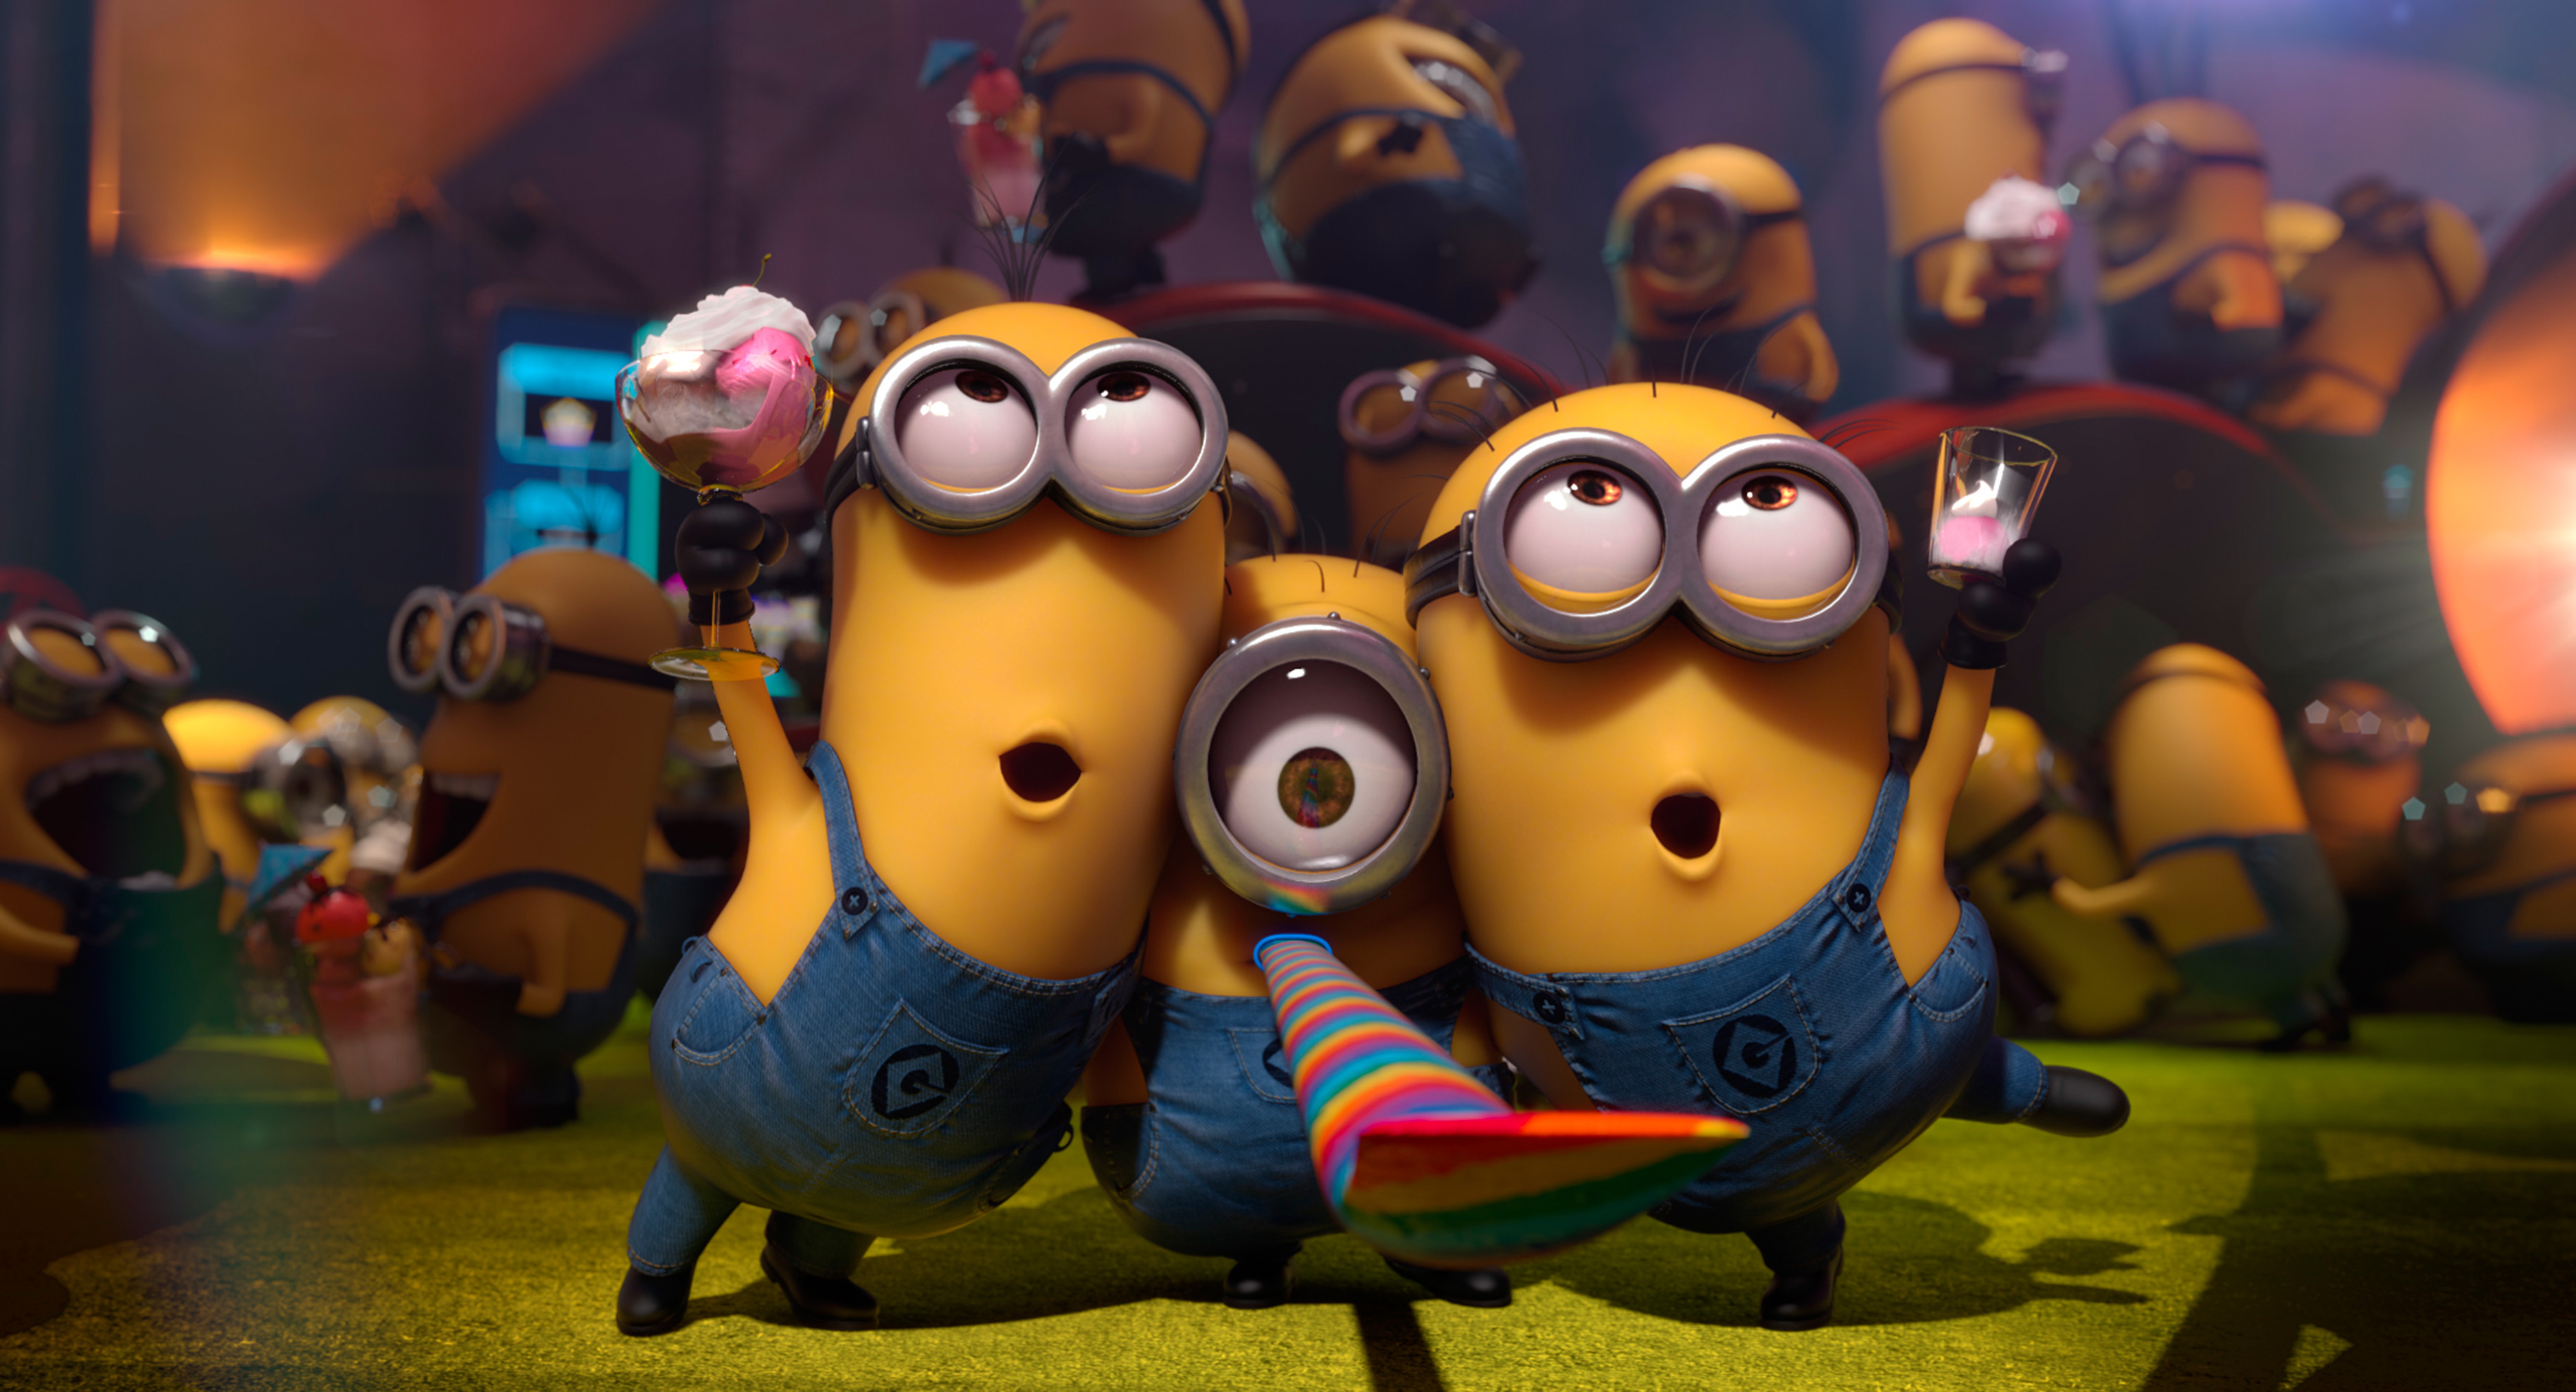 3750x2027 Cute Minion Wallpapers HD for Desktop (5)